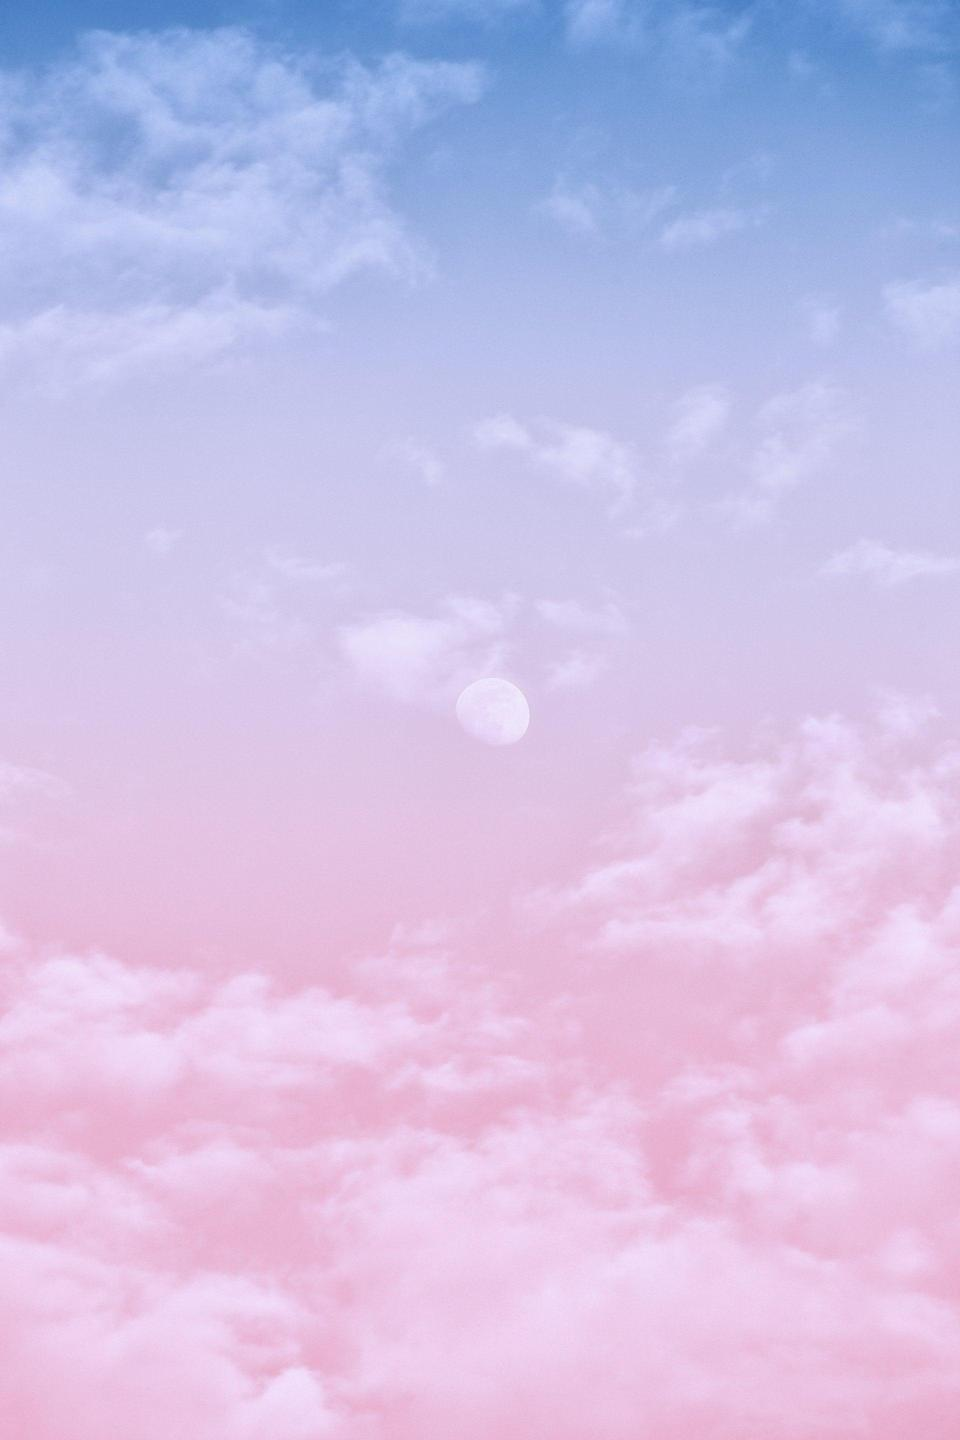 """<p>Libras are lovers of balance, peace, generosity, and indulgence. This sign's power colors are pink and blue, which seem opposite but actually balance each other out. <a href=""""https://www.colorpsychology.org/pink/"""" class=""""link rapid-noclick-resp"""" rel=""""nofollow noopener"""" target=""""_blank"""" data-ylk=""""slk:Pink is calming"""">Pink is calming</a>, linked with love, femininity, optimism, and kindness, while <a href=""""https://www.colorpsychology.org/blue/"""" class=""""link rapid-noclick-resp"""" rel=""""nofollow noopener"""" target=""""_blank"""" data-ylk=""""slk:blue is restorative"""">blue is restorative</a>, linked with the ocean or sky, sincerity, intellectuality, and thoughtfulness.</p>"""